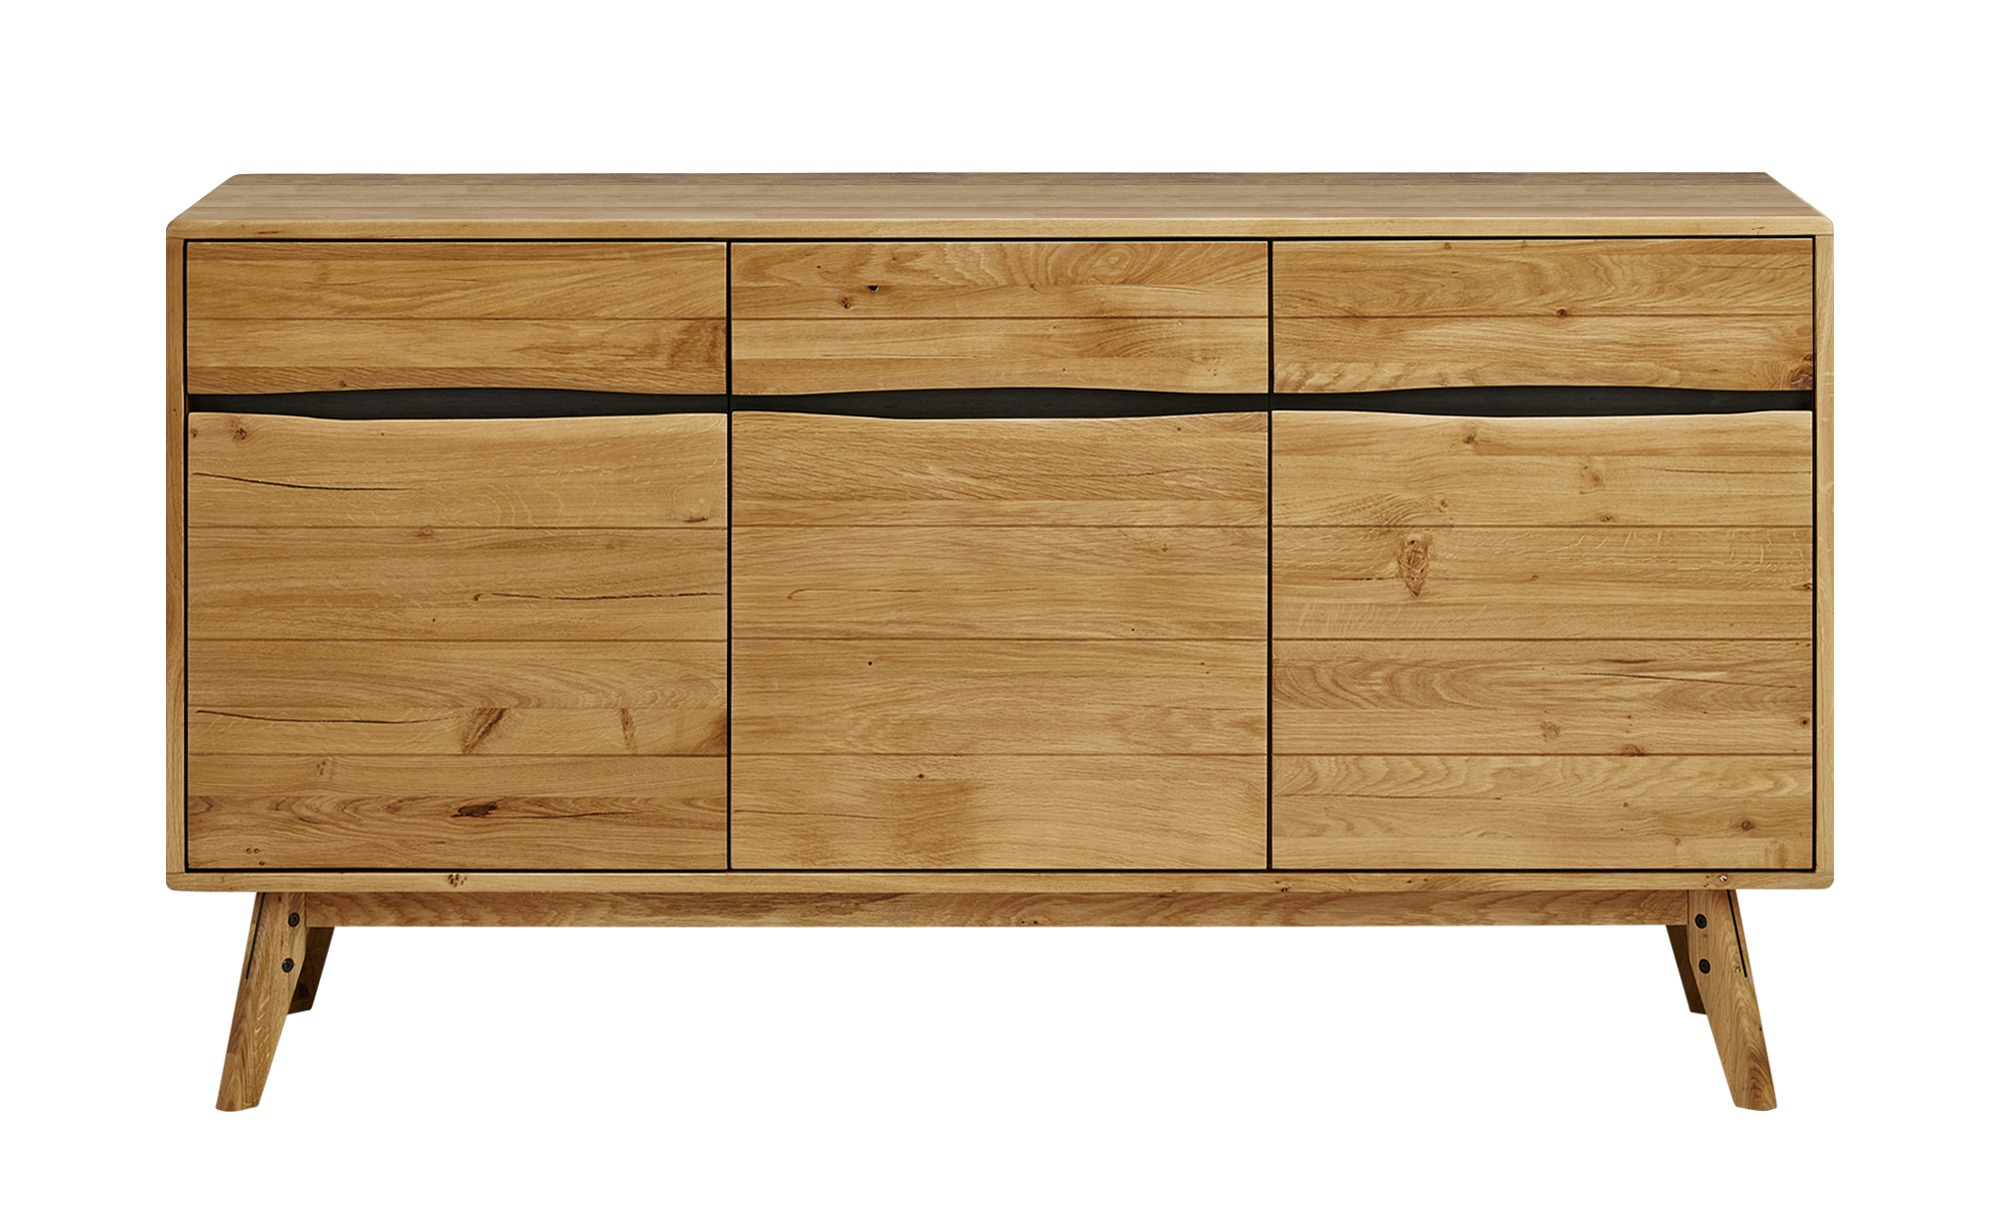 sideboard cinnamon breite 160 cm h he 88 cm holzfarben. Black Bedroom Furniture Sets. Home Design Ideas